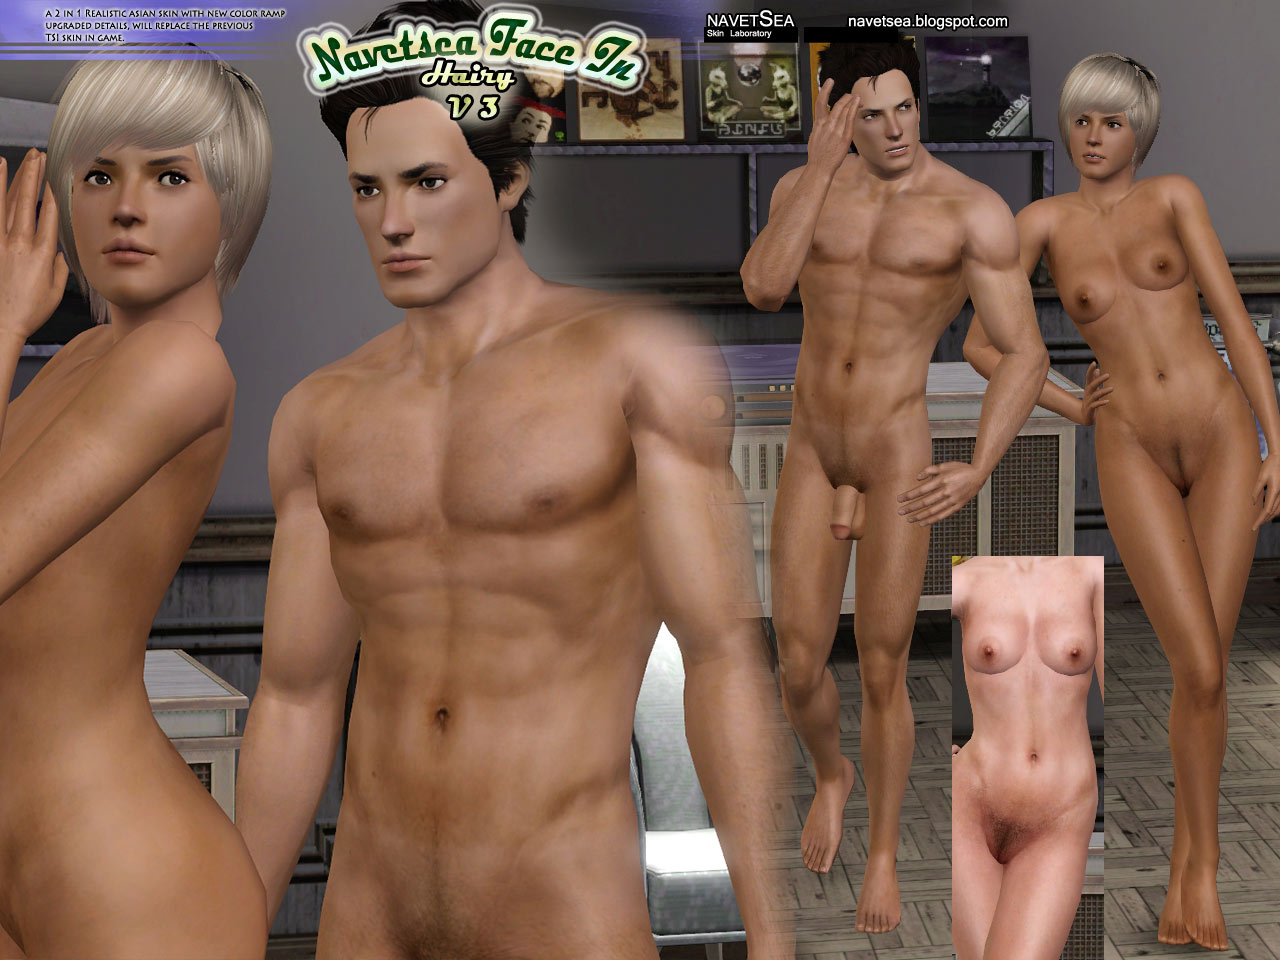 Buy sims 2 nude patch free hentai thumbs